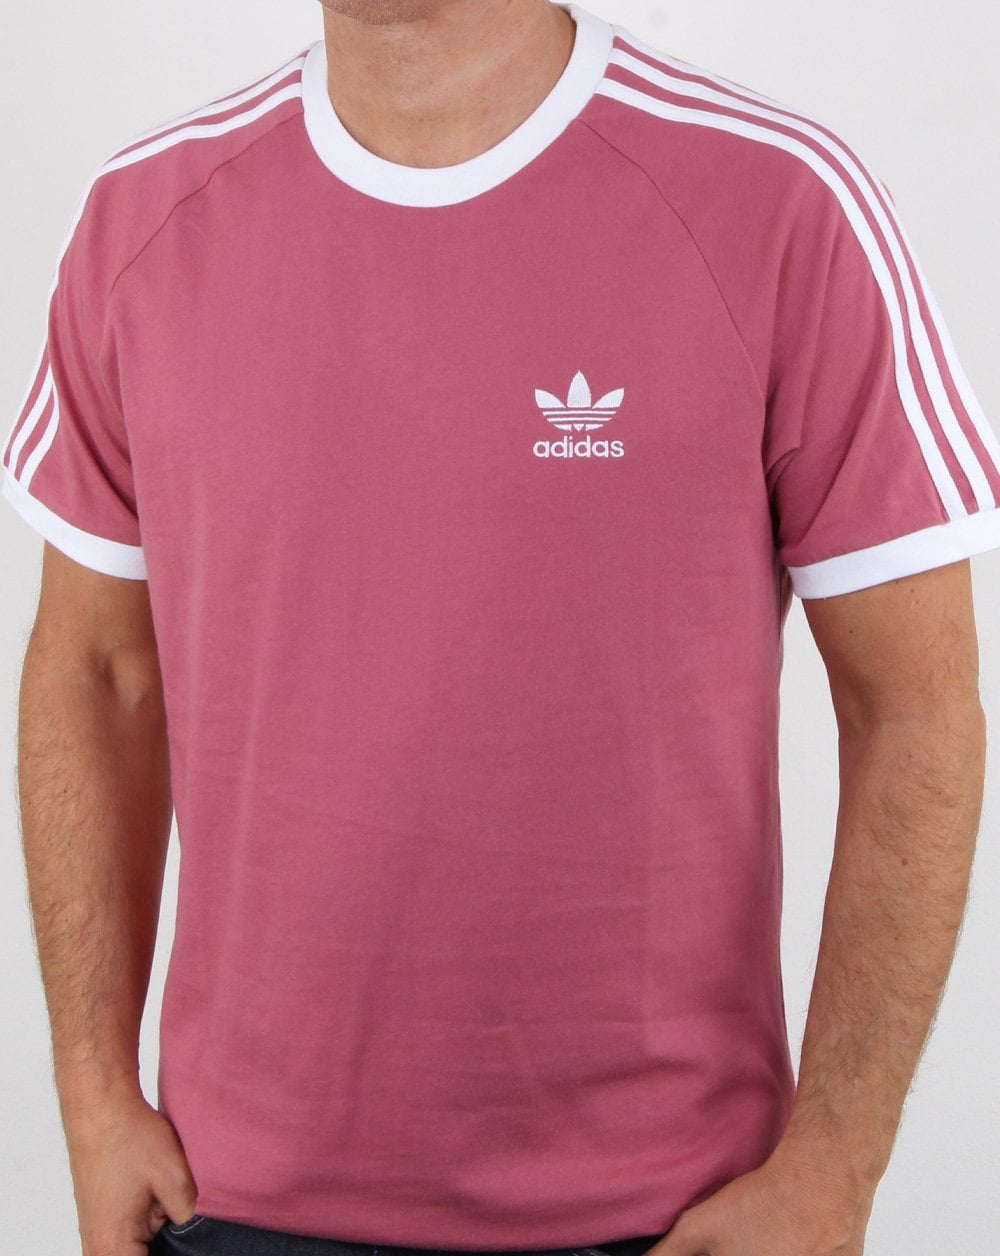 Adidas Originals 3 Stripes T Shirt soft Maroon